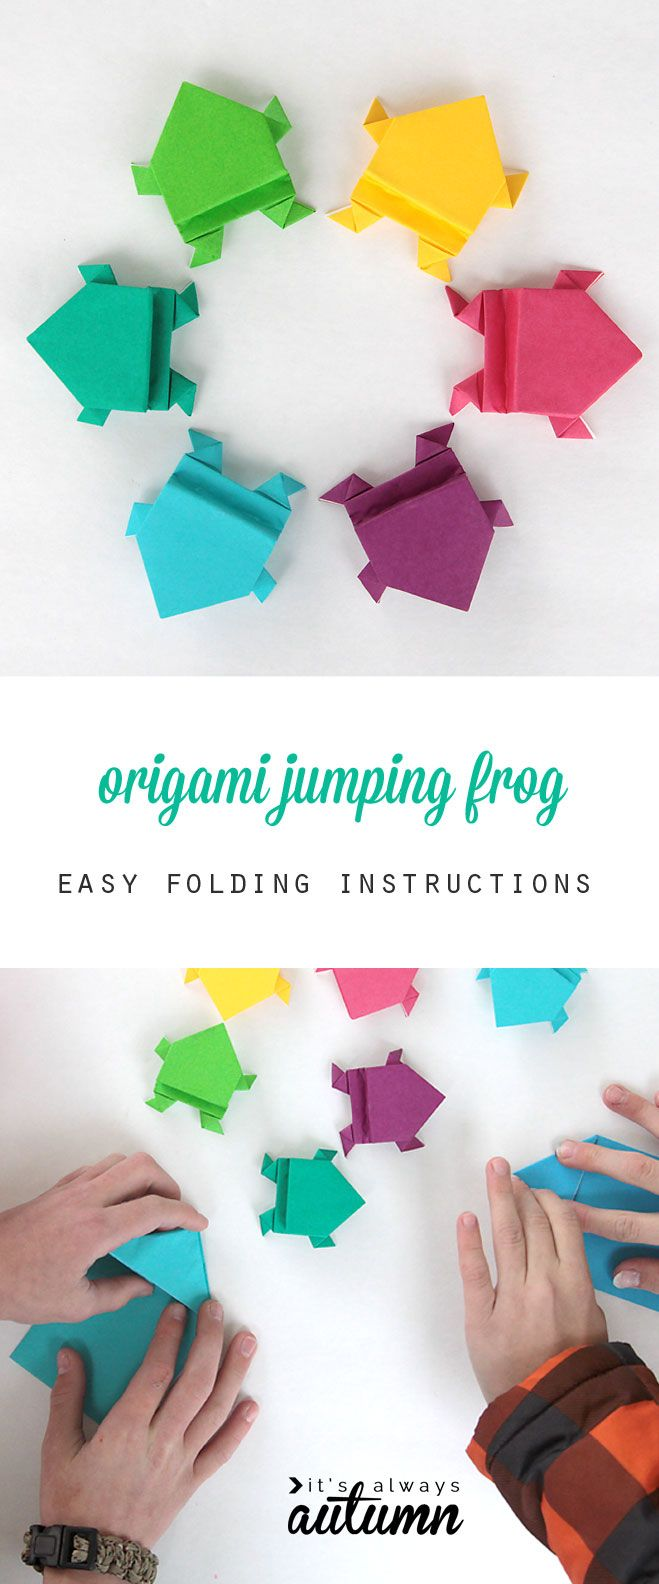 Nice Photo Instructions Show How To Fold An Origami Jumping Frog Looks Easy Enough For Kids